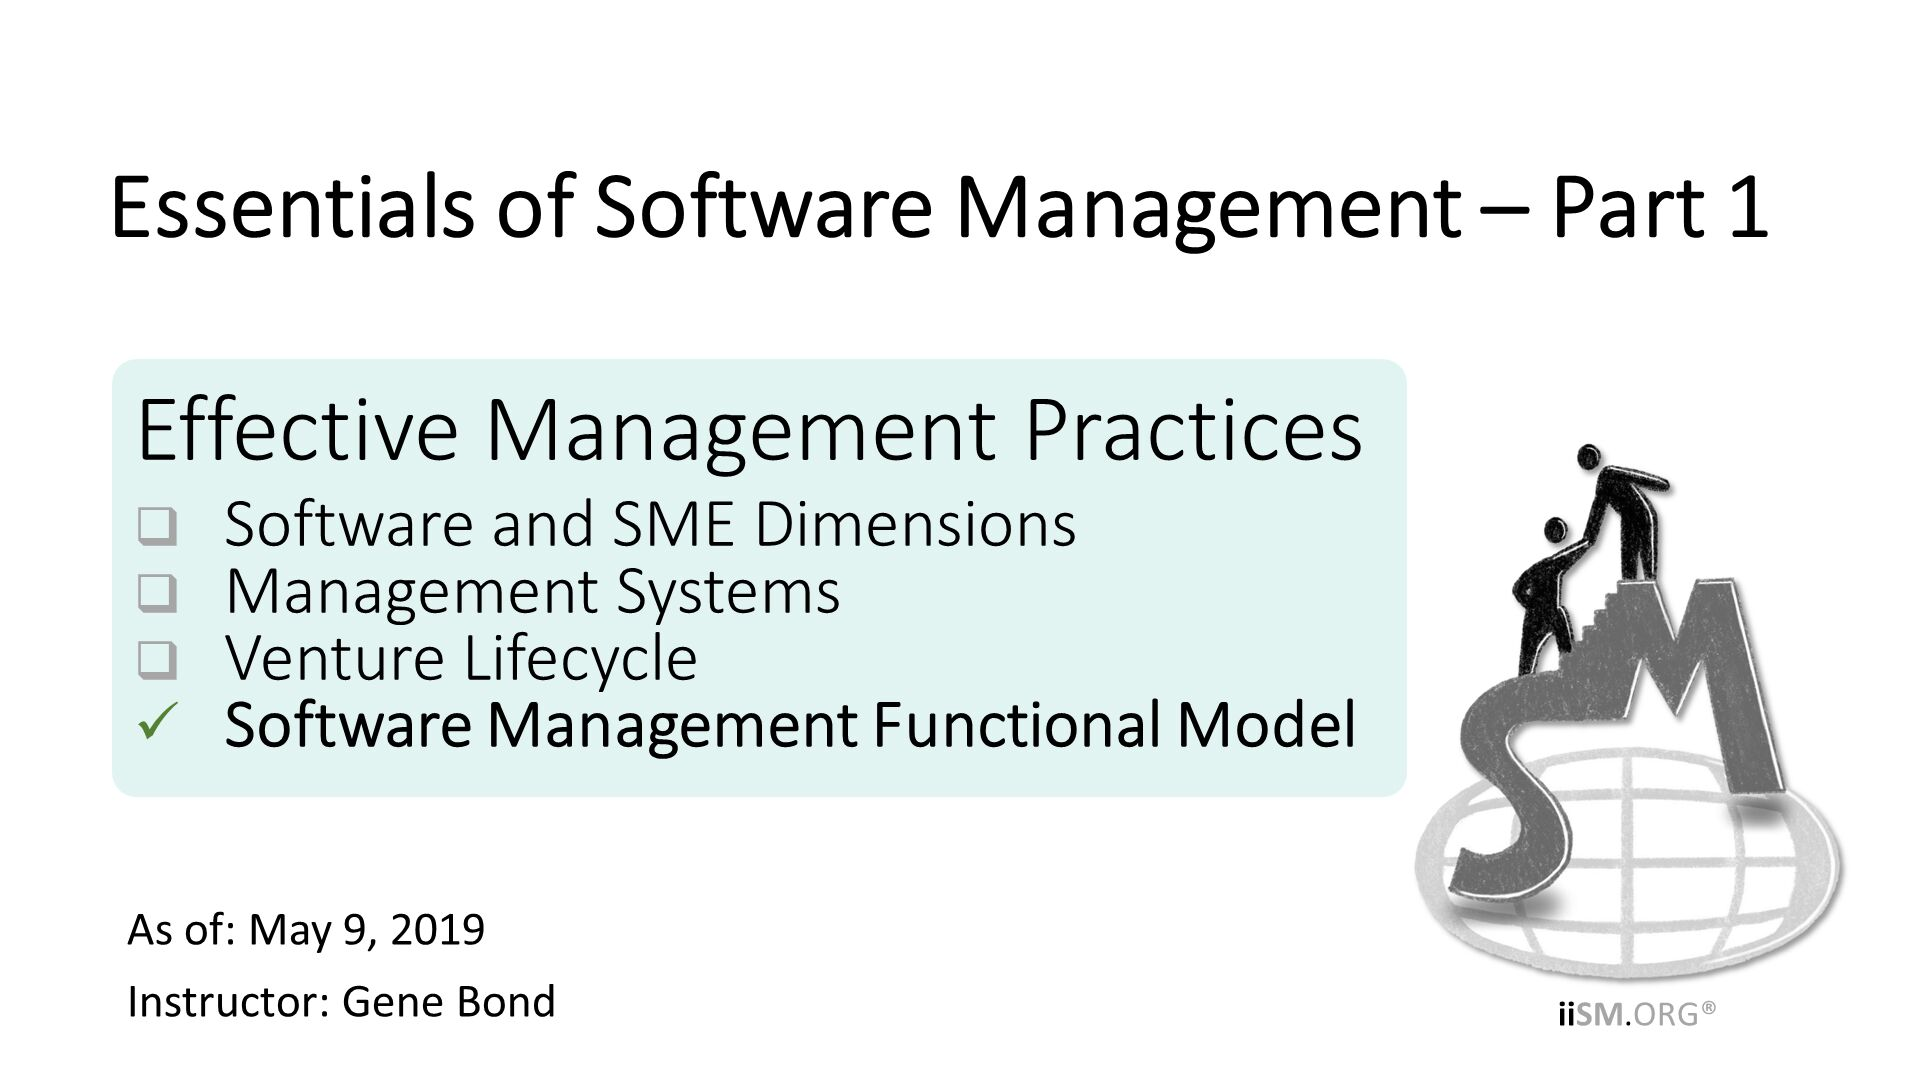 Effective Management Practices Software and SME Dimensions Management Systems Venture Lifecycle Software Management Functional Model. As of: March 1, 2019 Instructor: Gene Bond . Essentials of Software Management – Part 1.